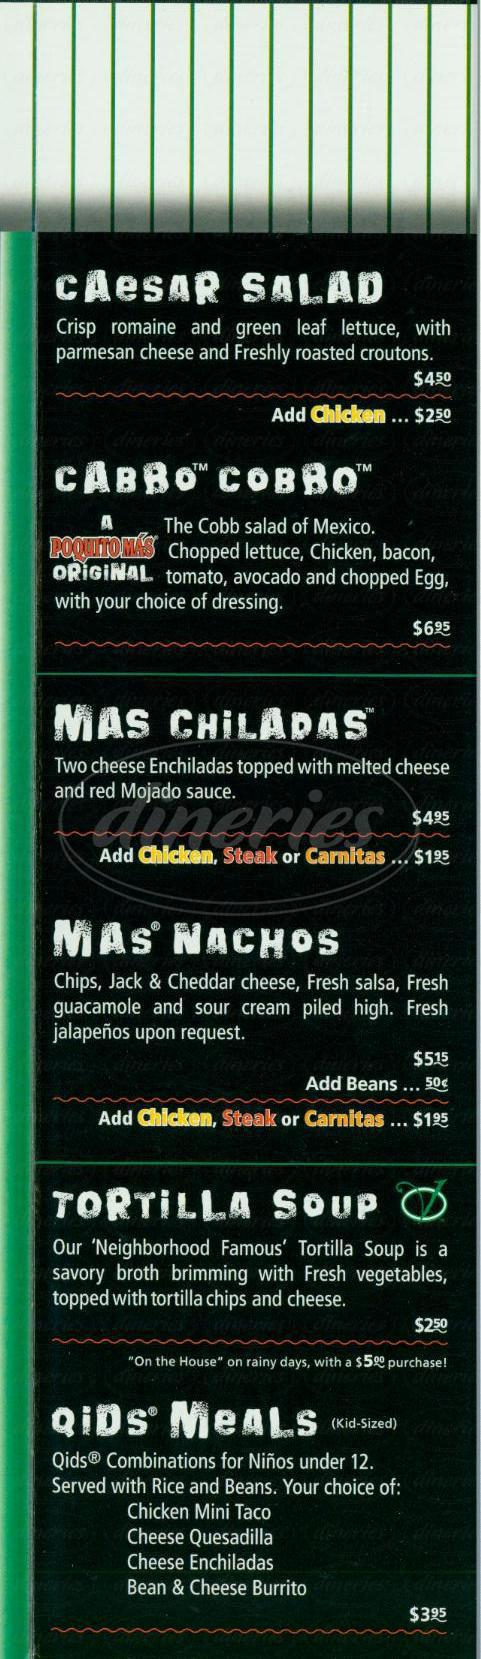 menu for Poquito Mas